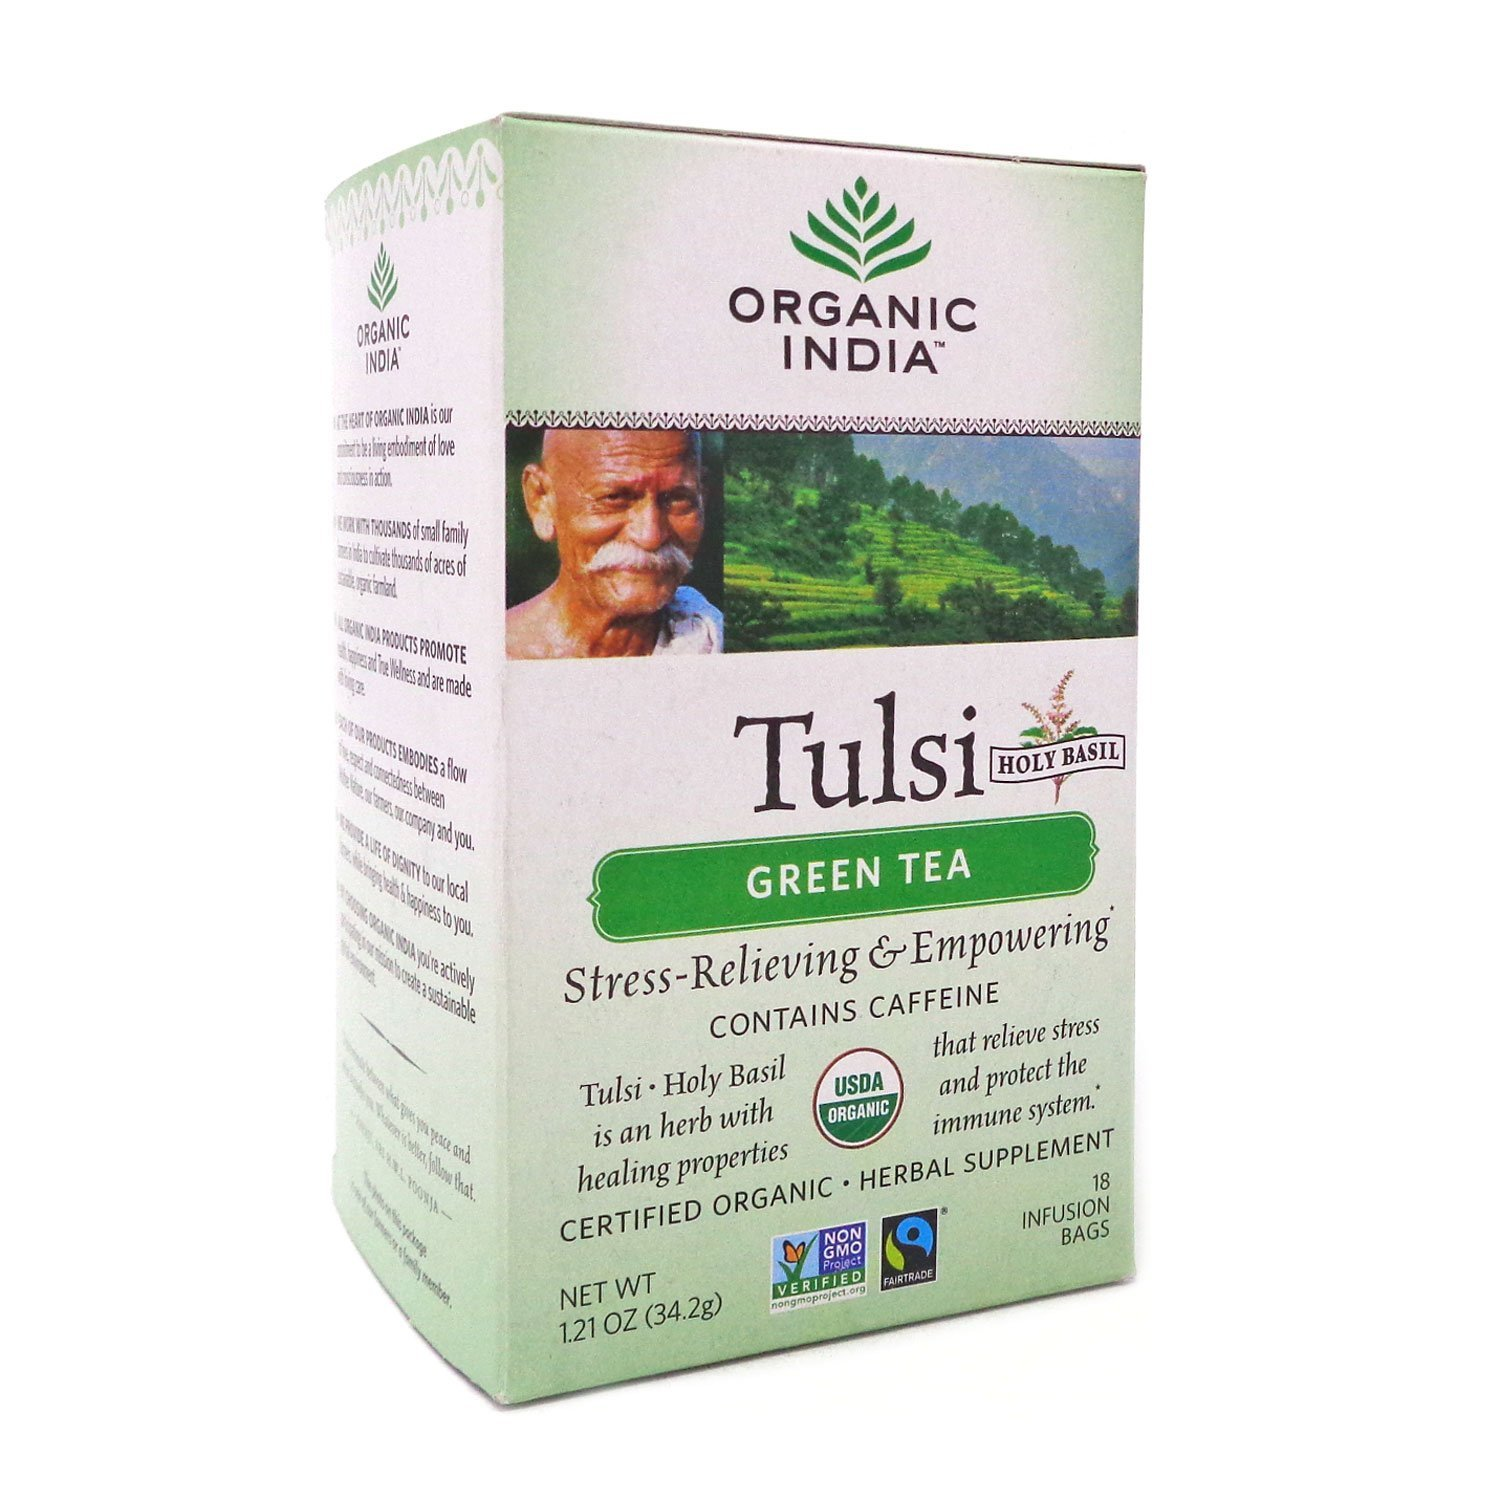 Organic India Tulsi Green Tea Classic, 18-Count Teabags (Pack of 6)